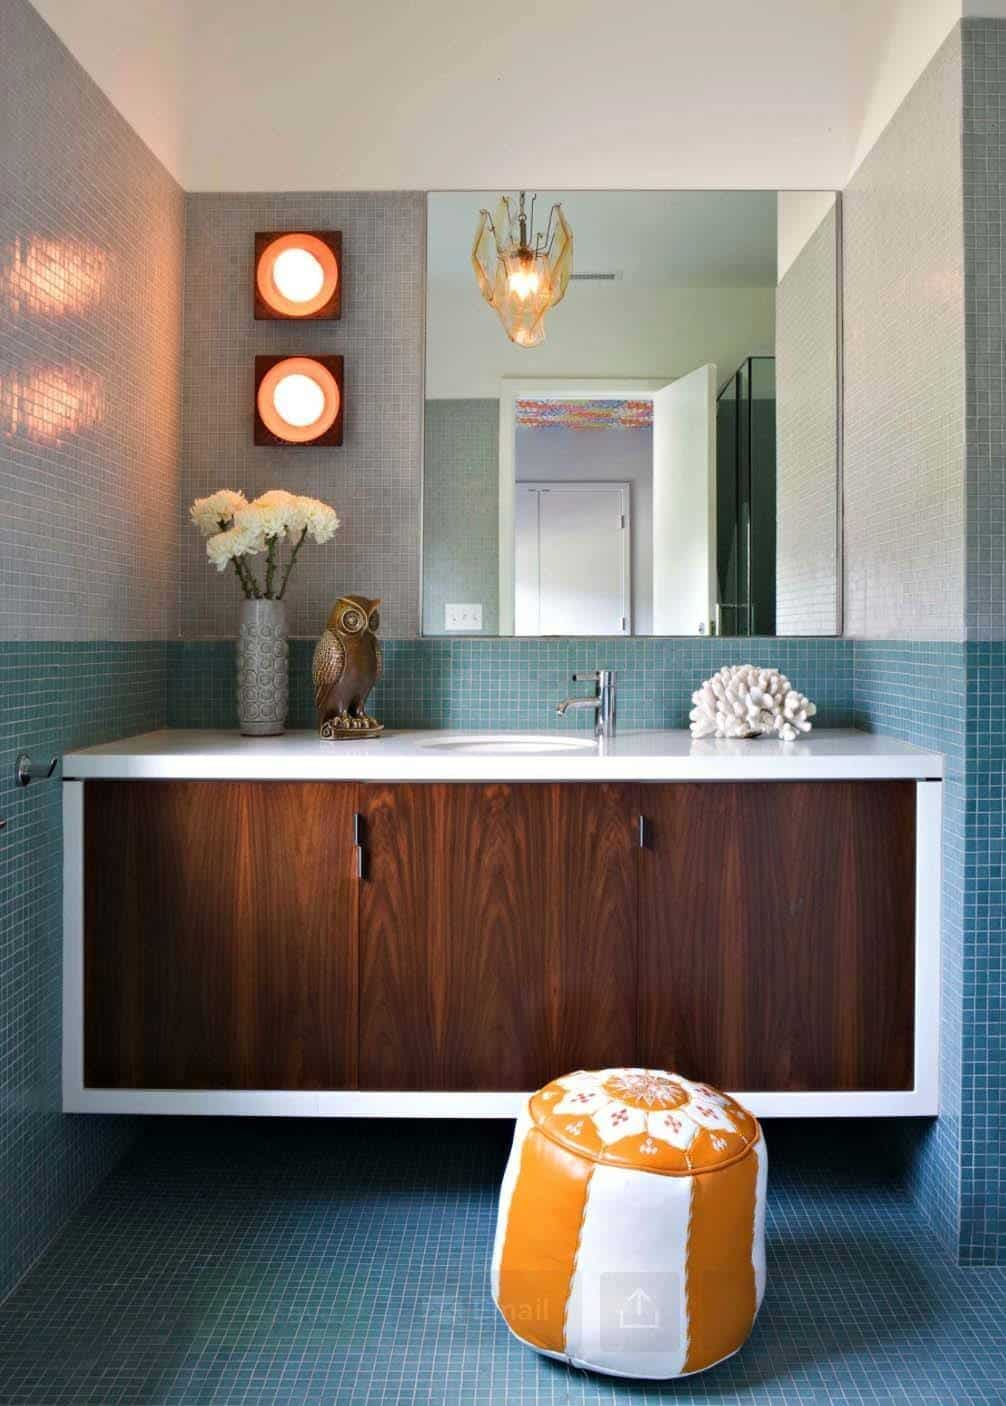 Superieur Mid Century Modern Bathroom Ideas 08 1 Kindesign